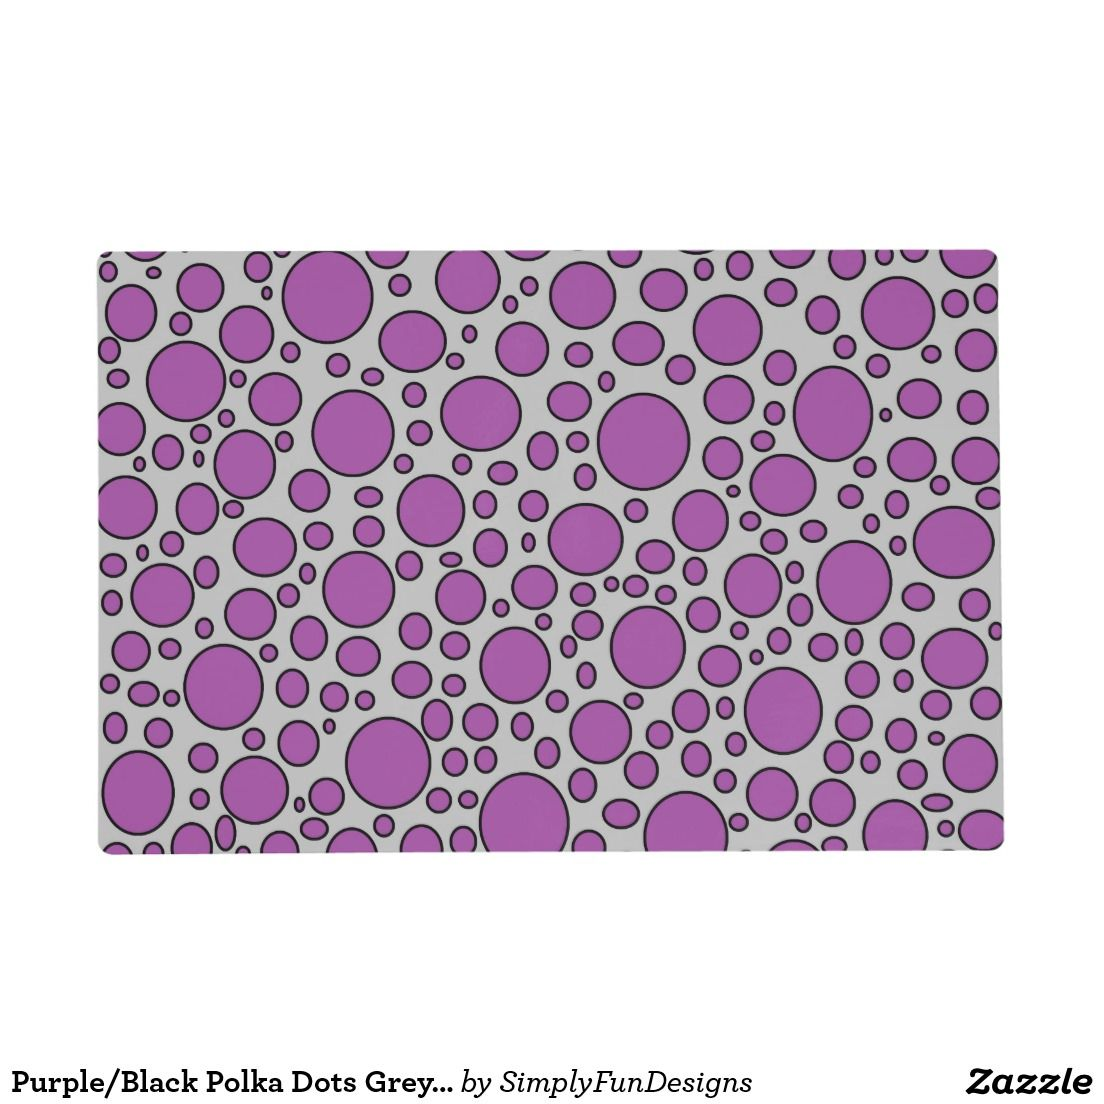 Purple/Black Polka Dots Grey Laminated Placemat